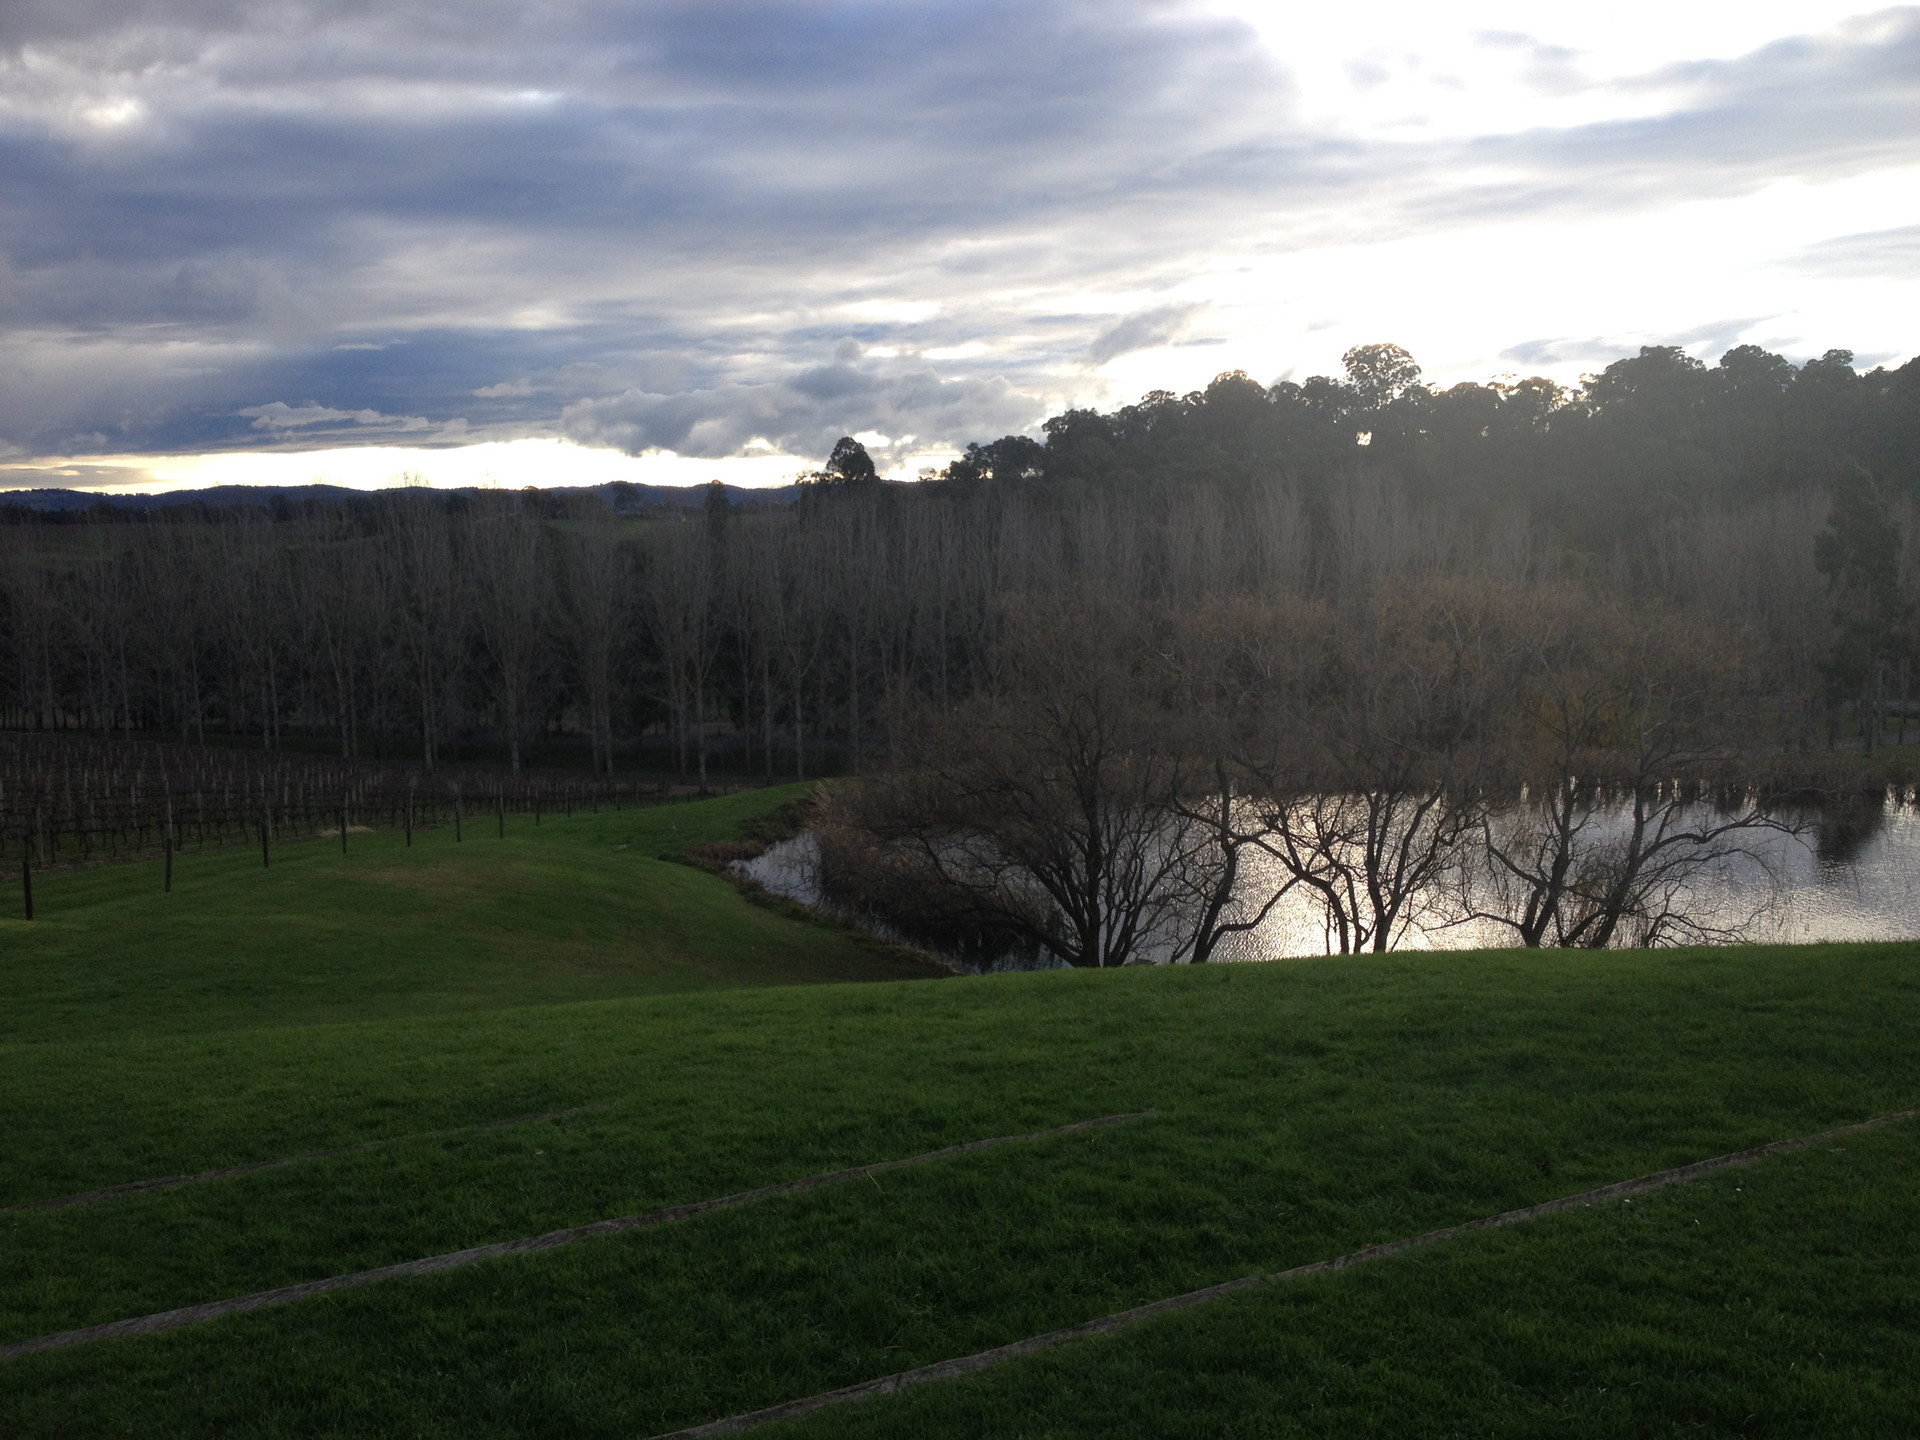 Vineyard reservoir in the Yarra Valley, Victoria